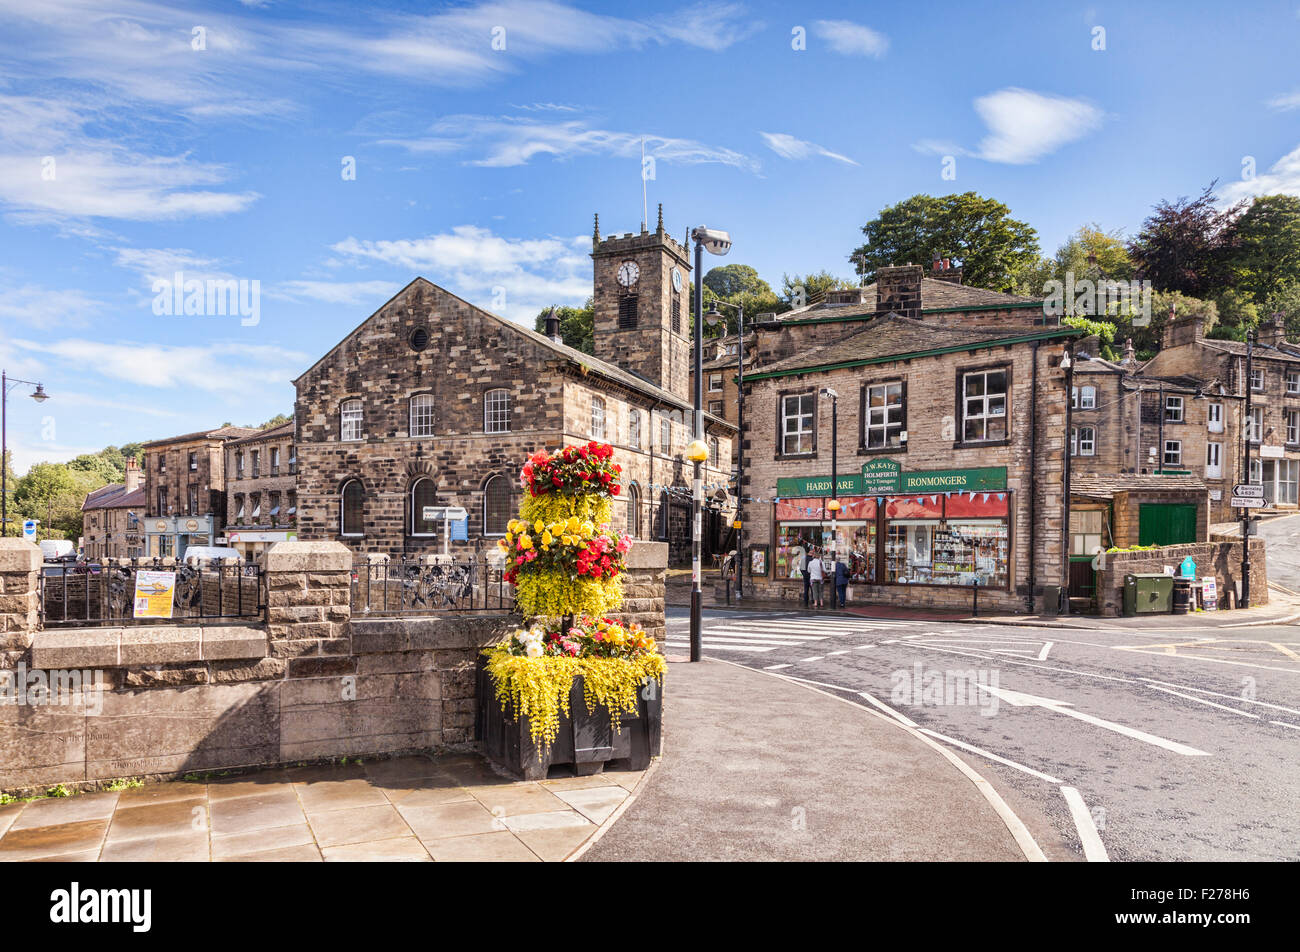 Made famous by the television comedy series Last of the Summer Wine, the West Yorkshire village of Holmfirth, England, - Stock Image